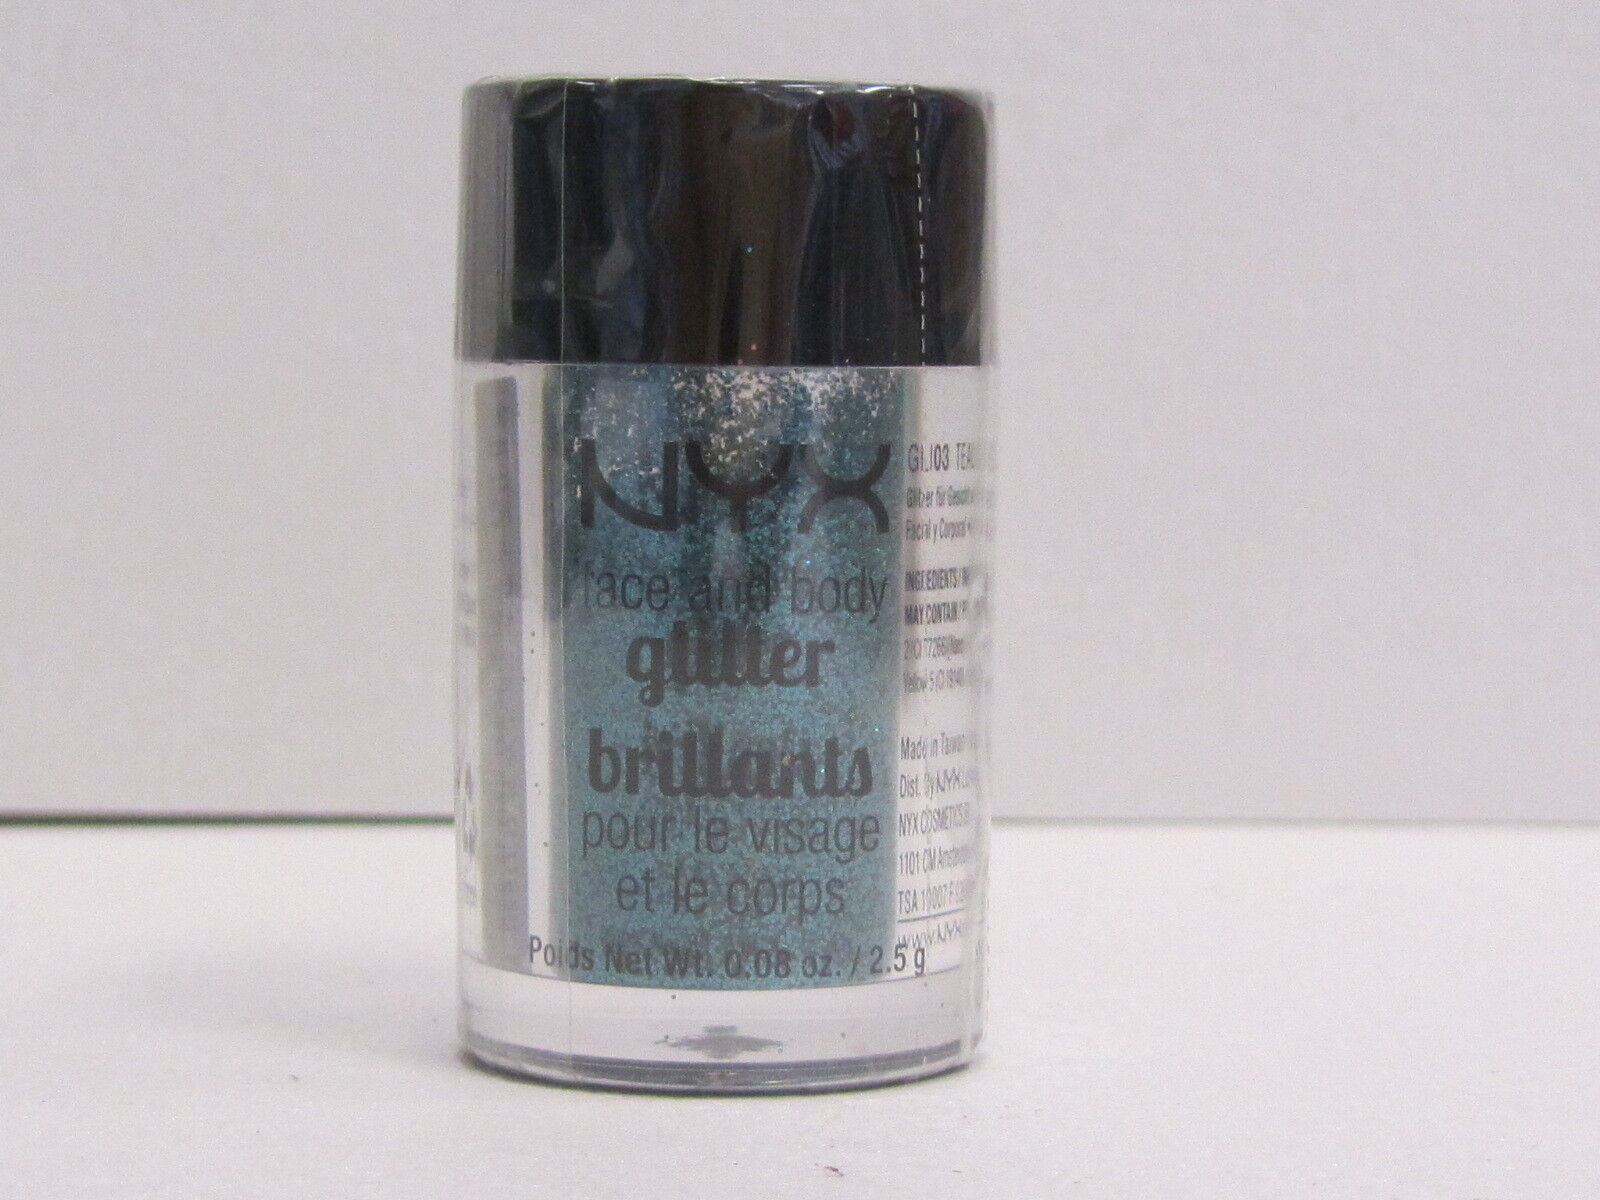 NYX Face and Body Glitter color GLI03 Teal 0.08 oz Brand New With Sealed